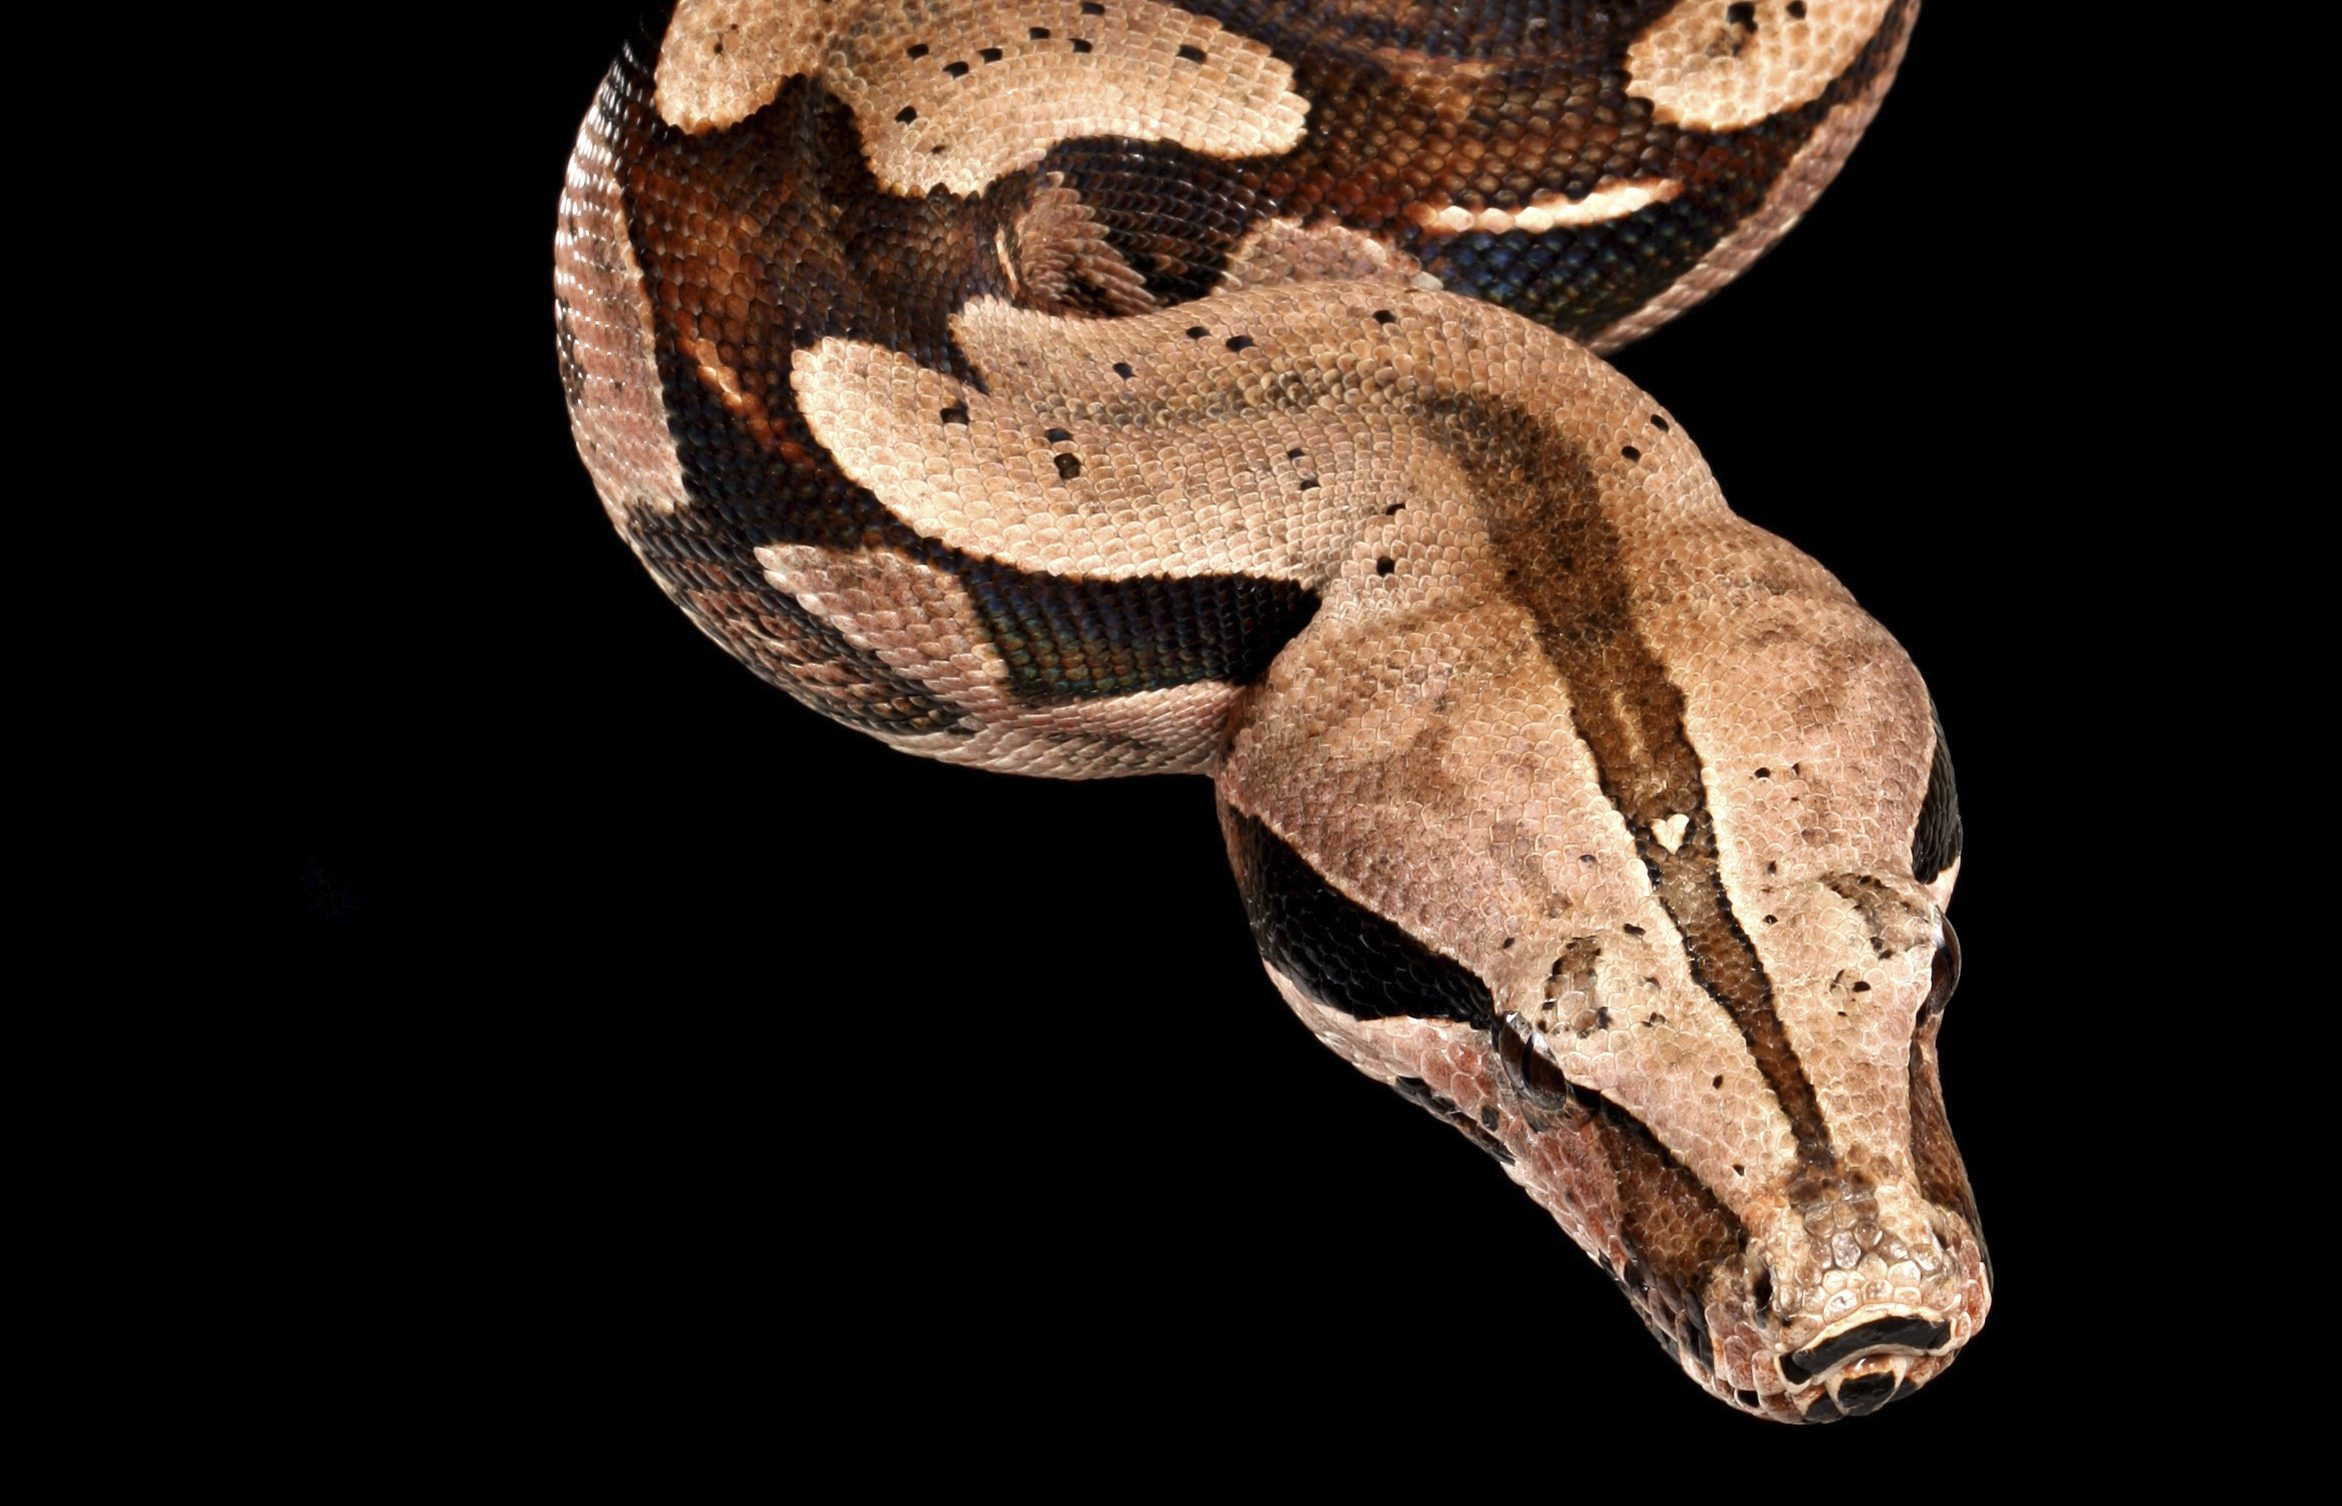 A Red Tail Boa hanging from a tree branch.